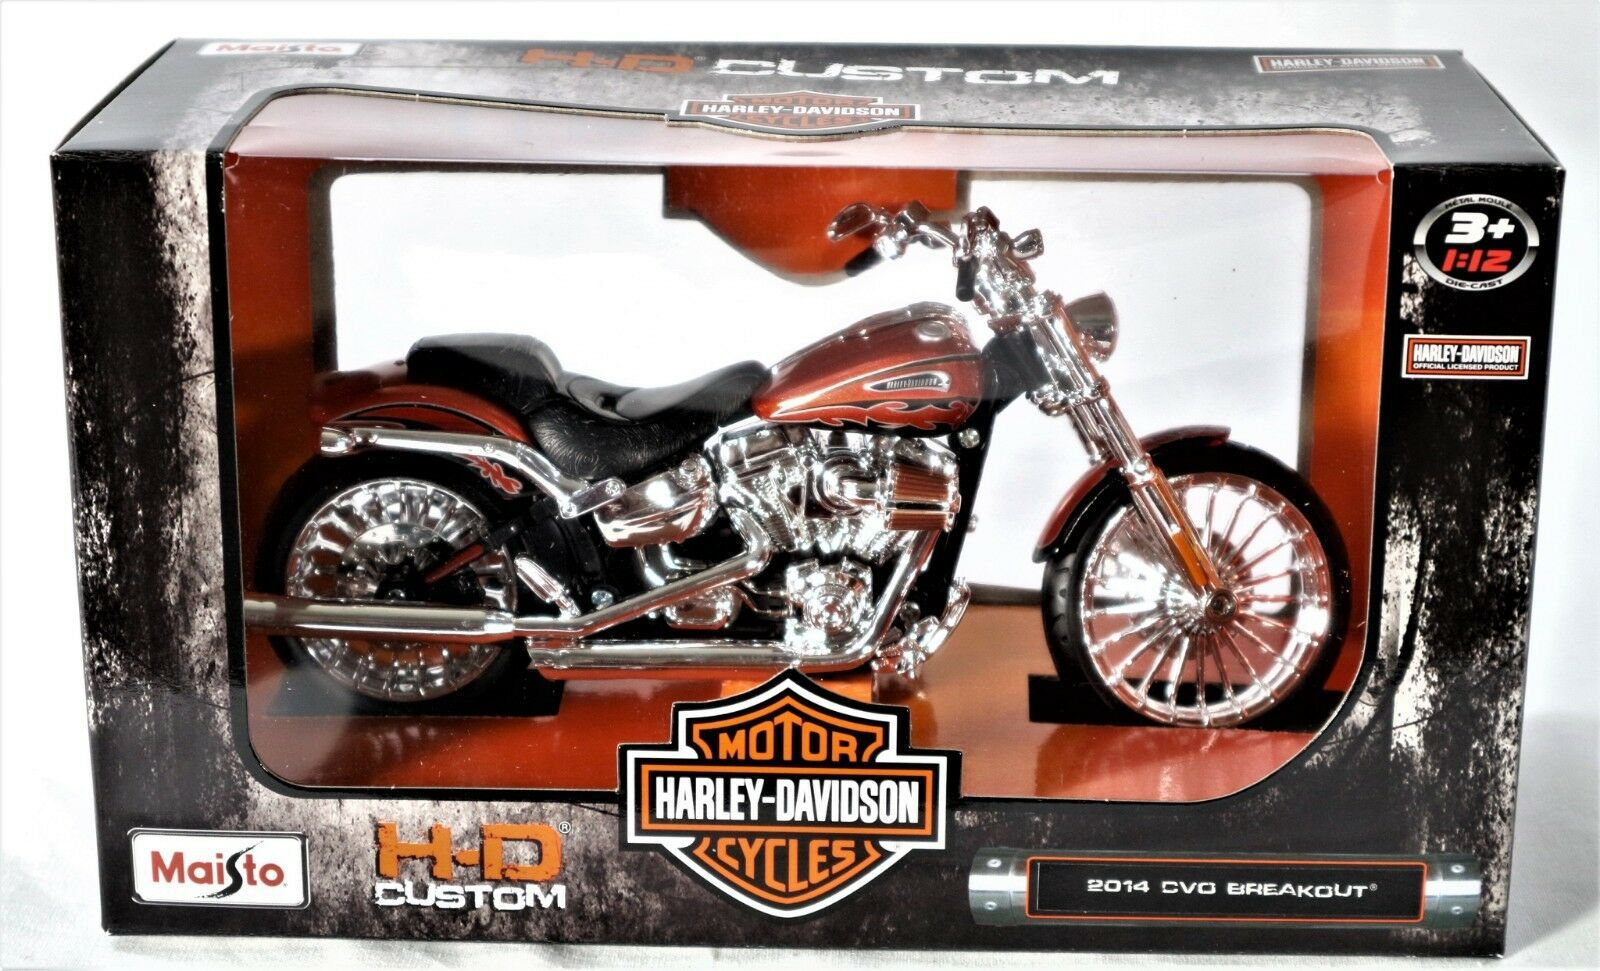 2014 Harley Davidson CVO Breakout Motorcycle Model 1/12